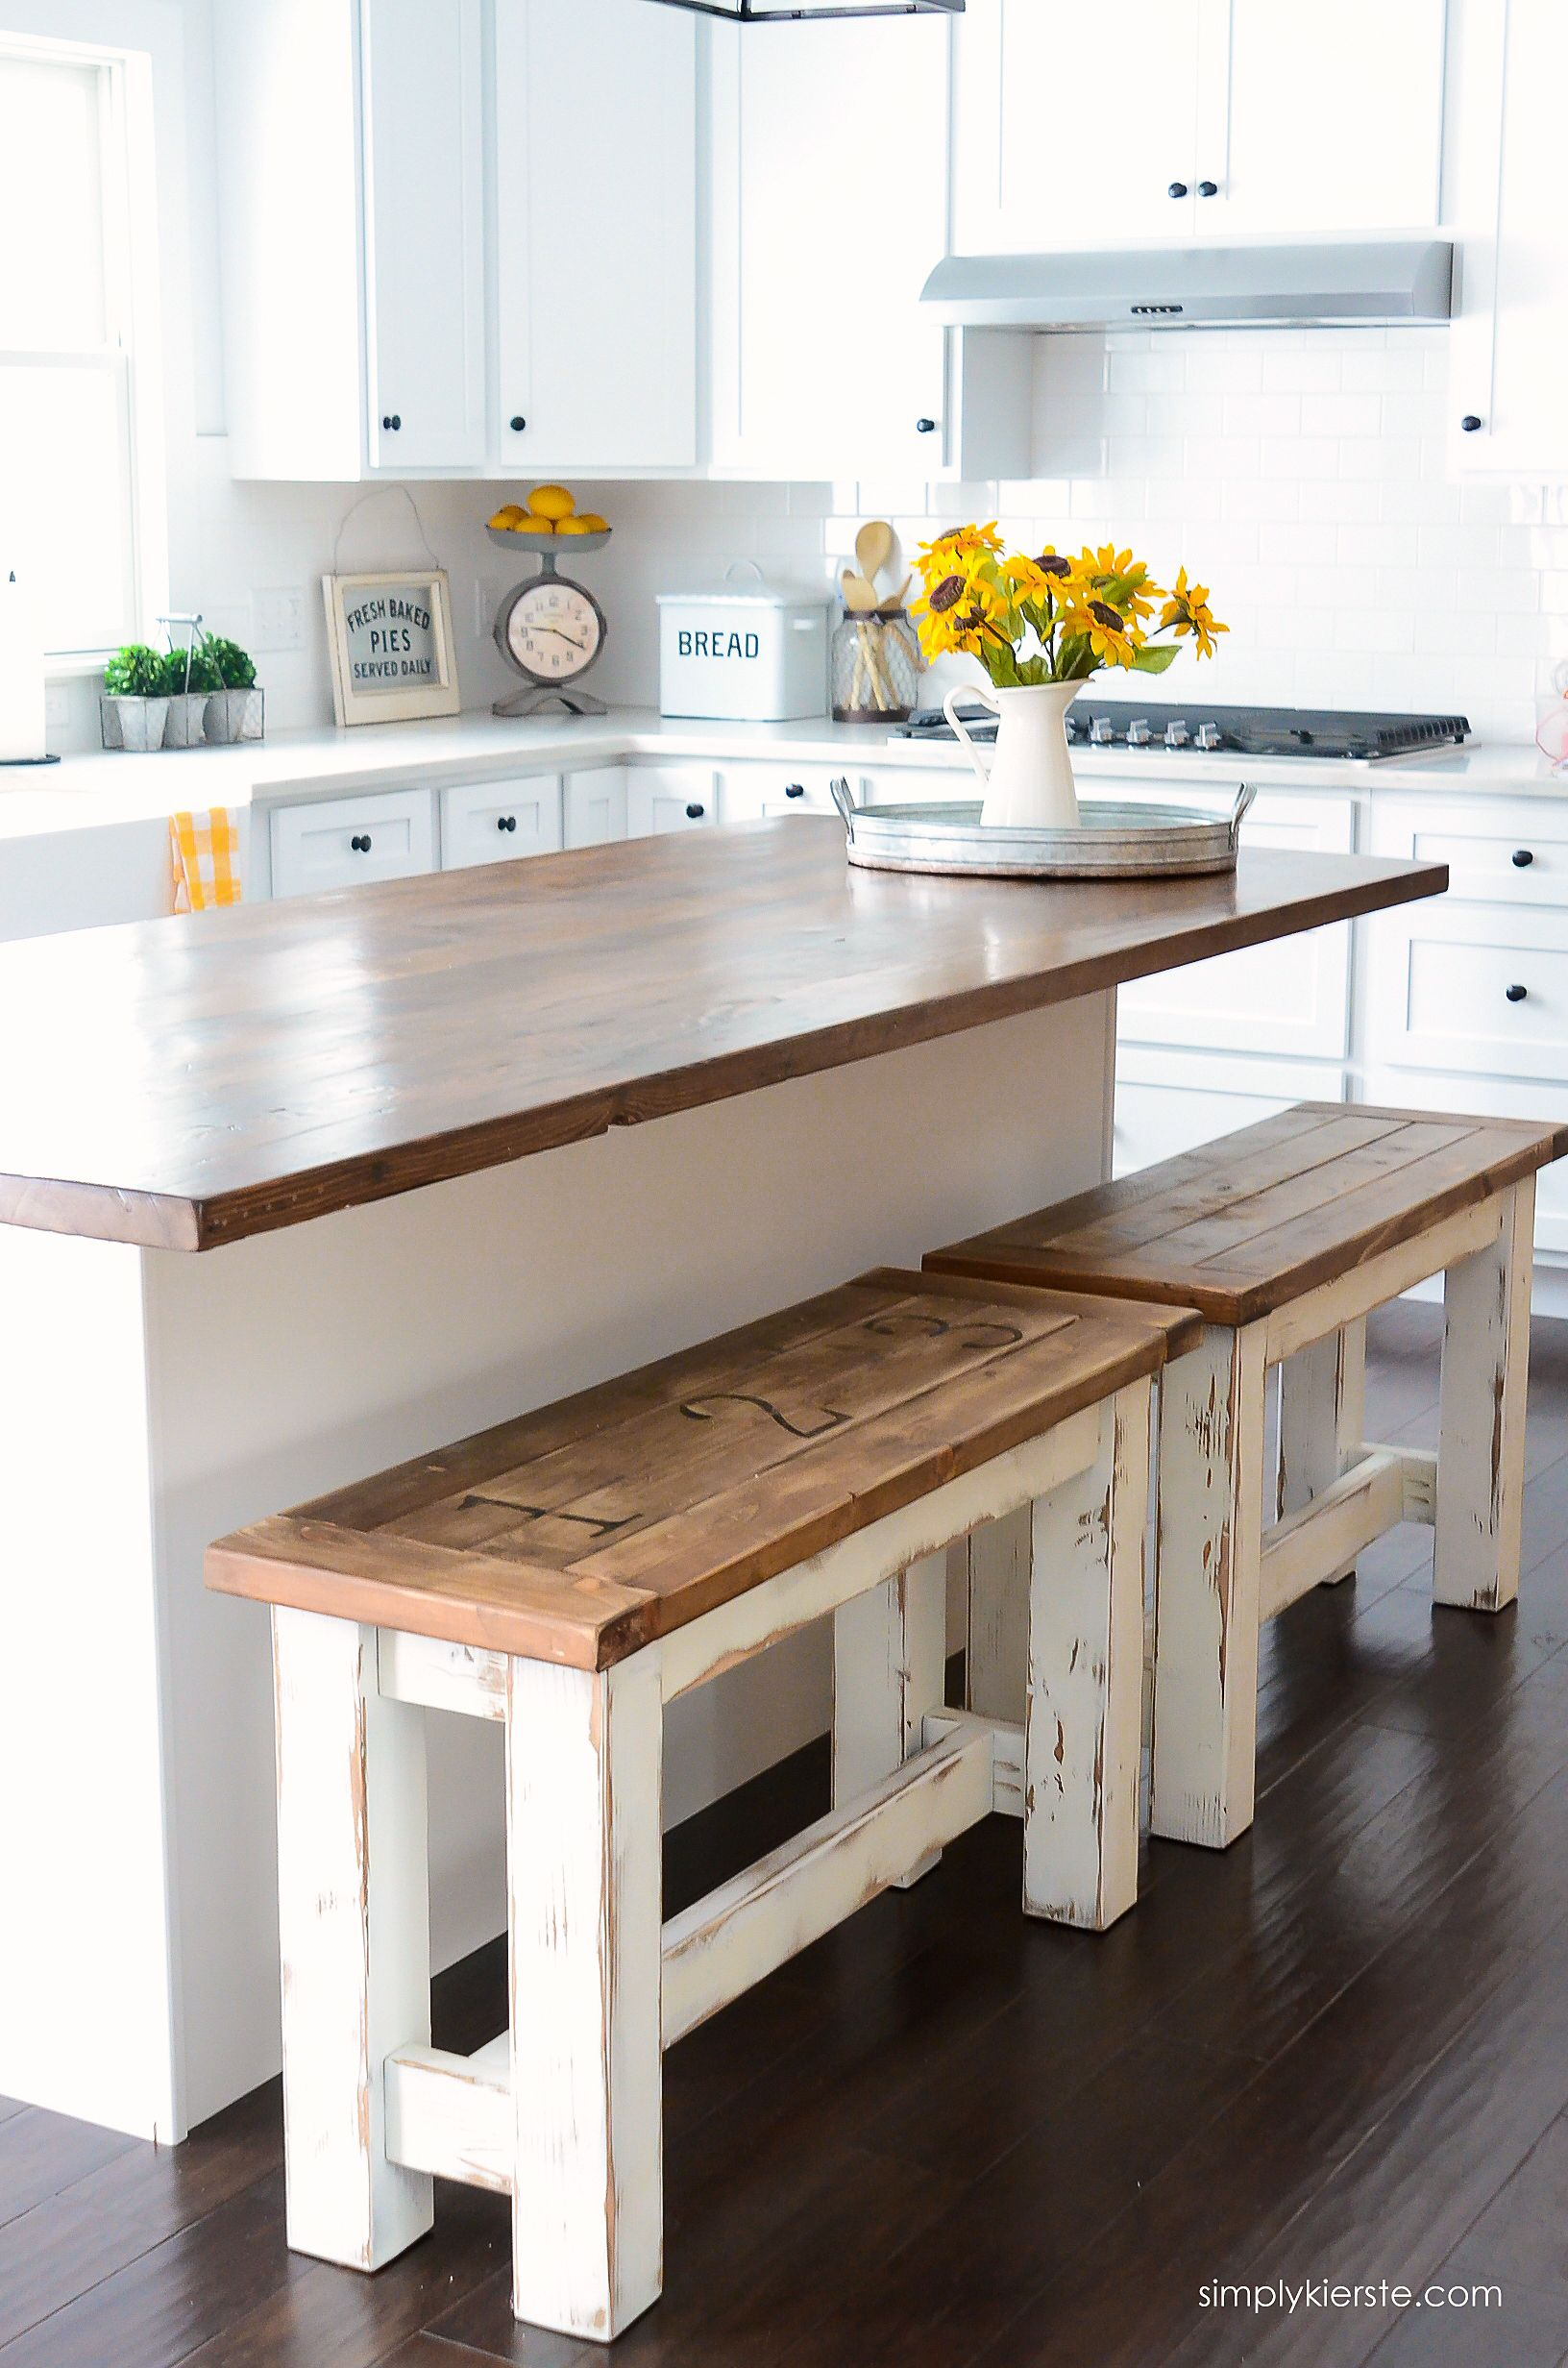 kitchen bench seating diy kitchen benches budget kitchen ideas farmhouse style 31700